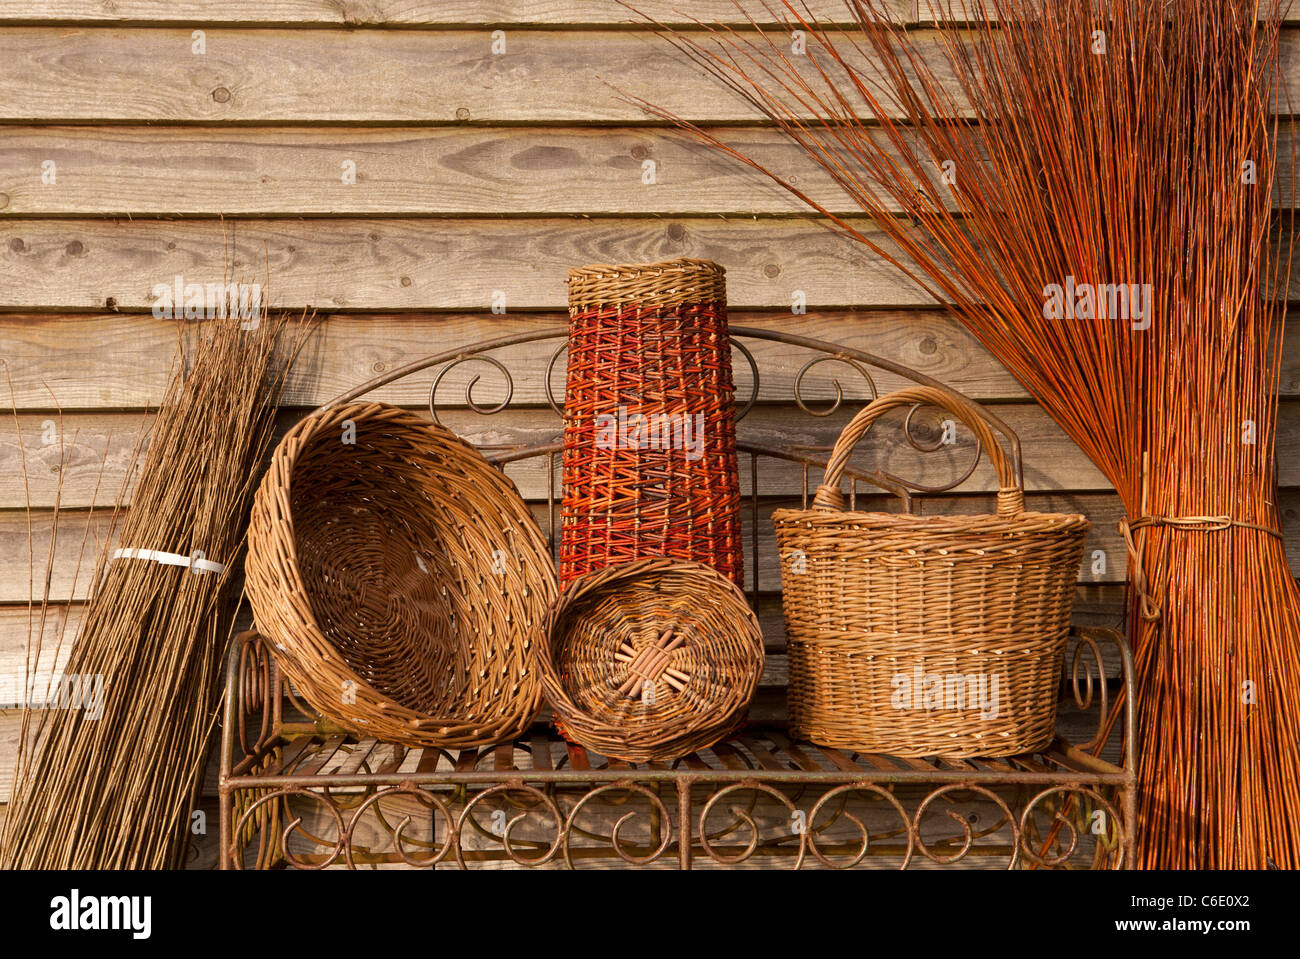 Willow Baskets Stock Photos & Willow Baskets Stock Images - Alamy